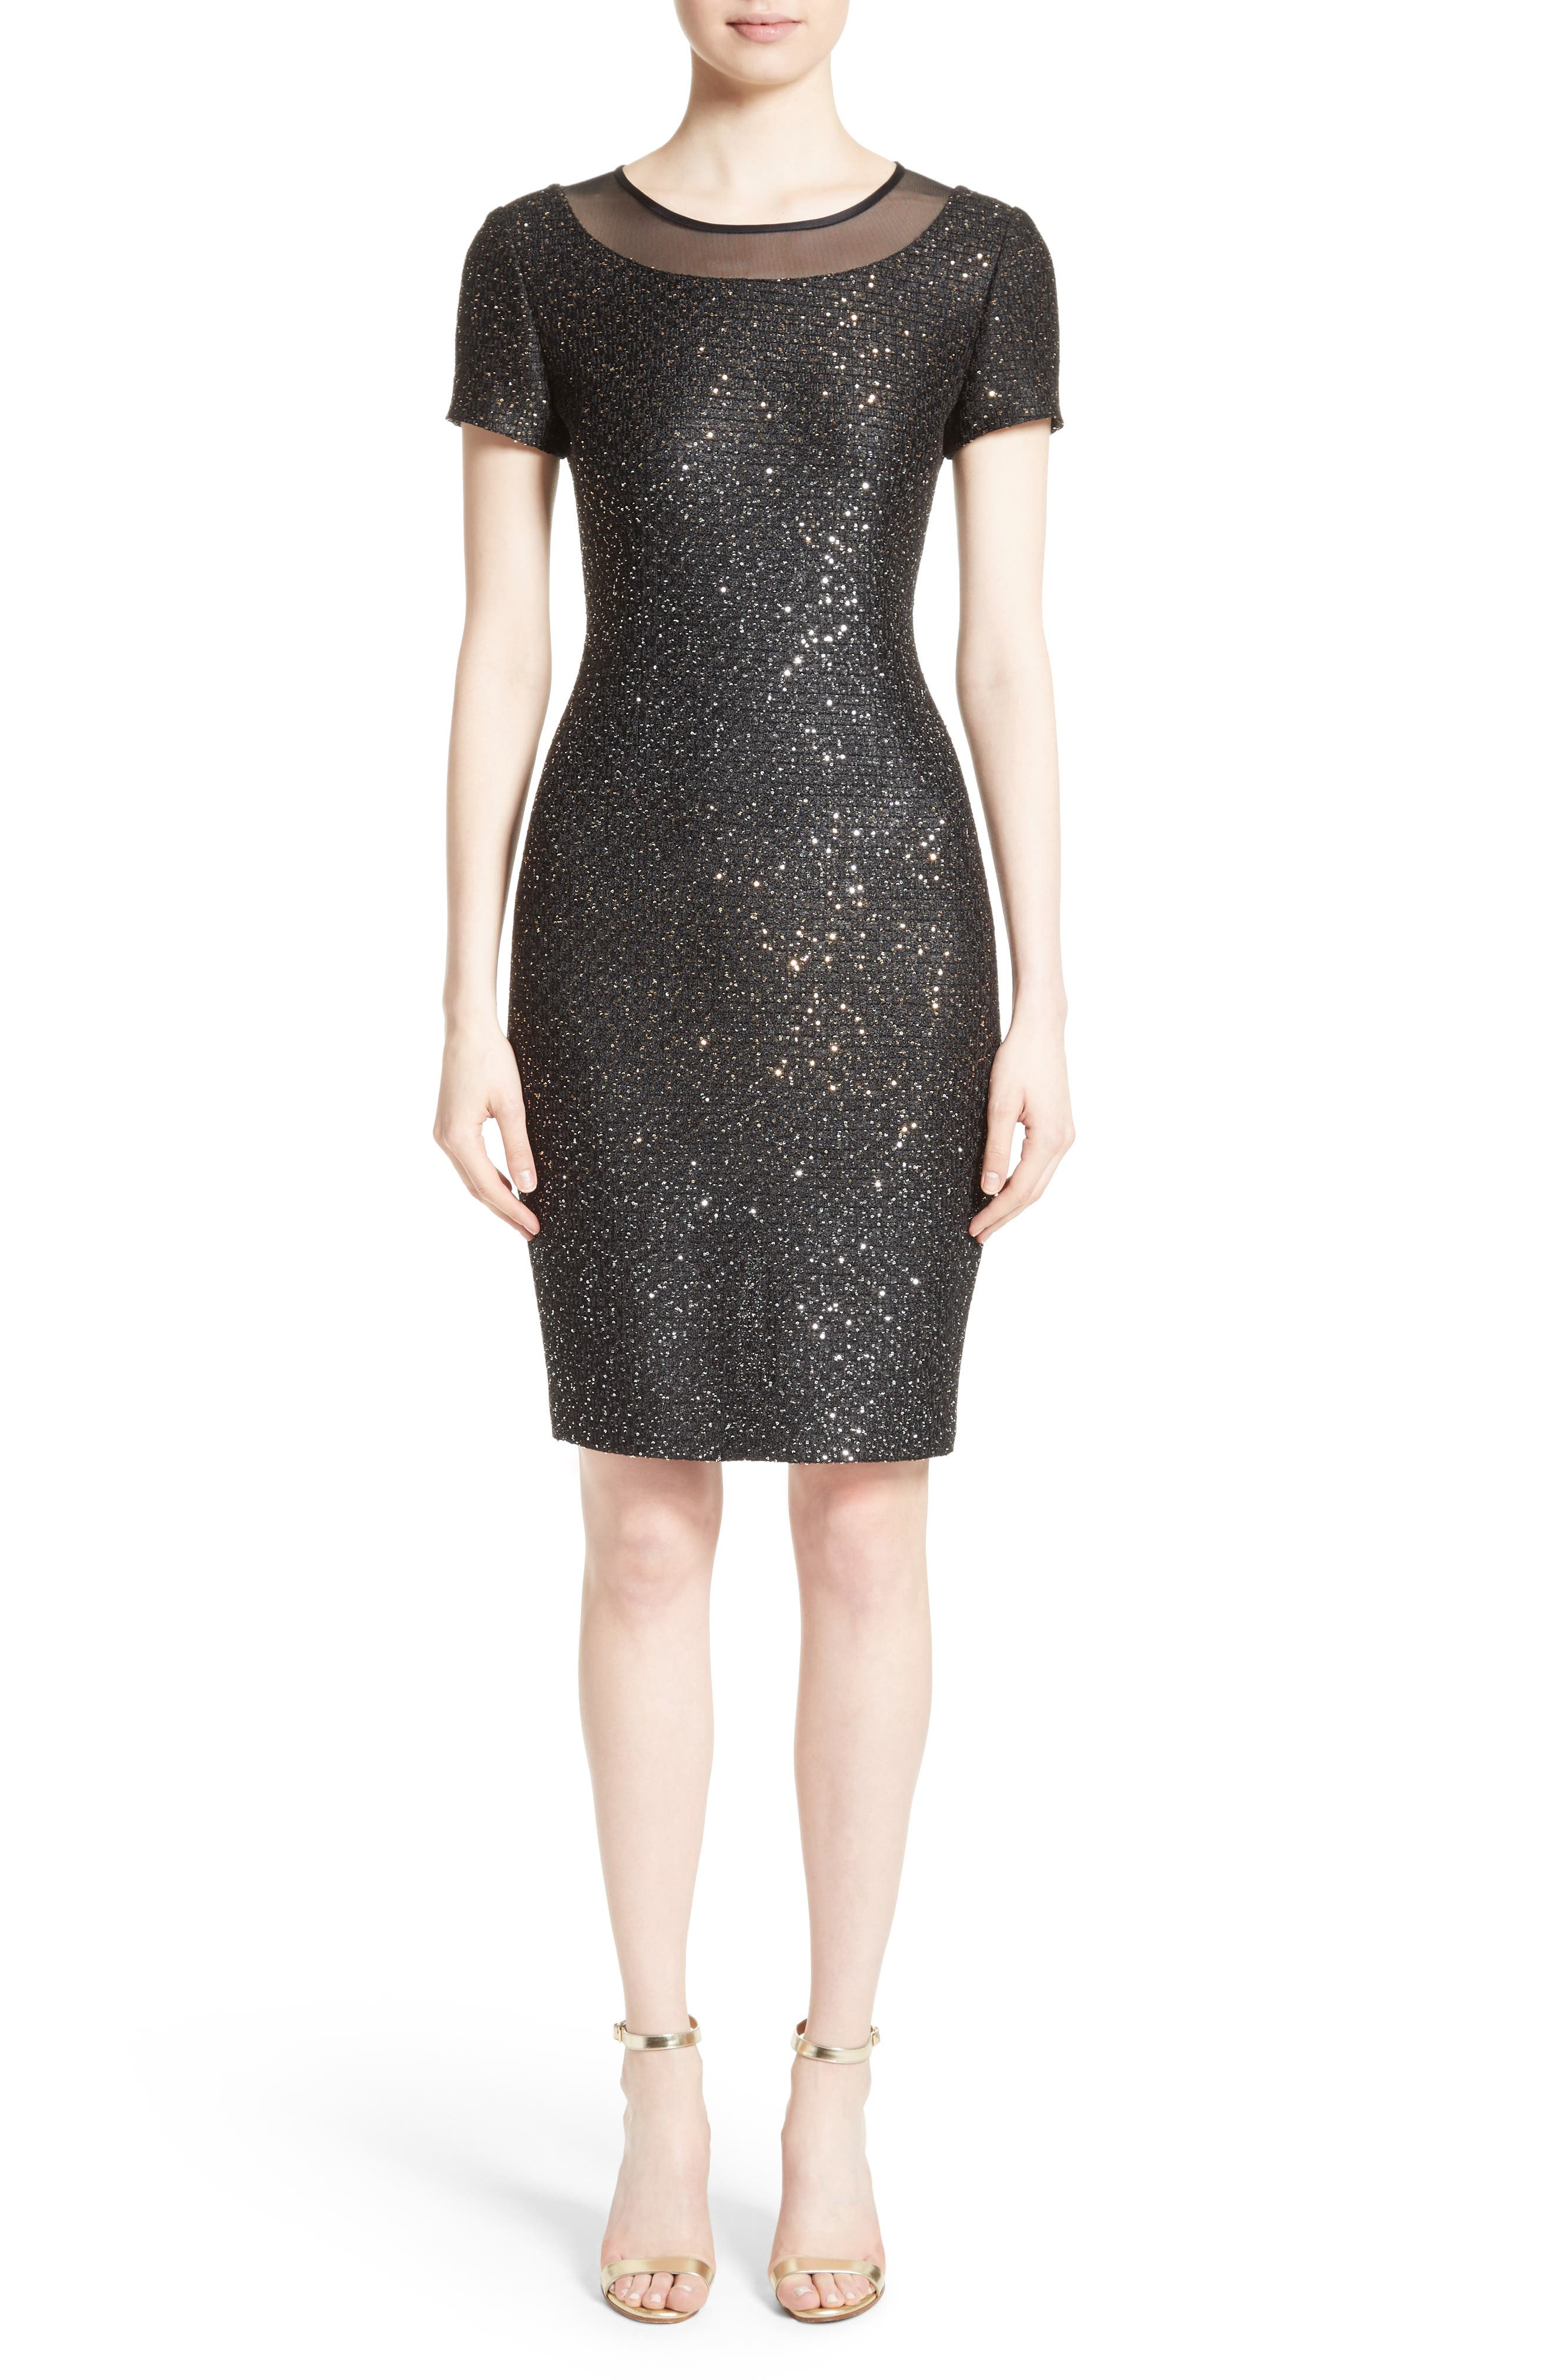 Alternate Image 1 Selected - St. John Collection Pranay Sequin Knit Sheath Dress